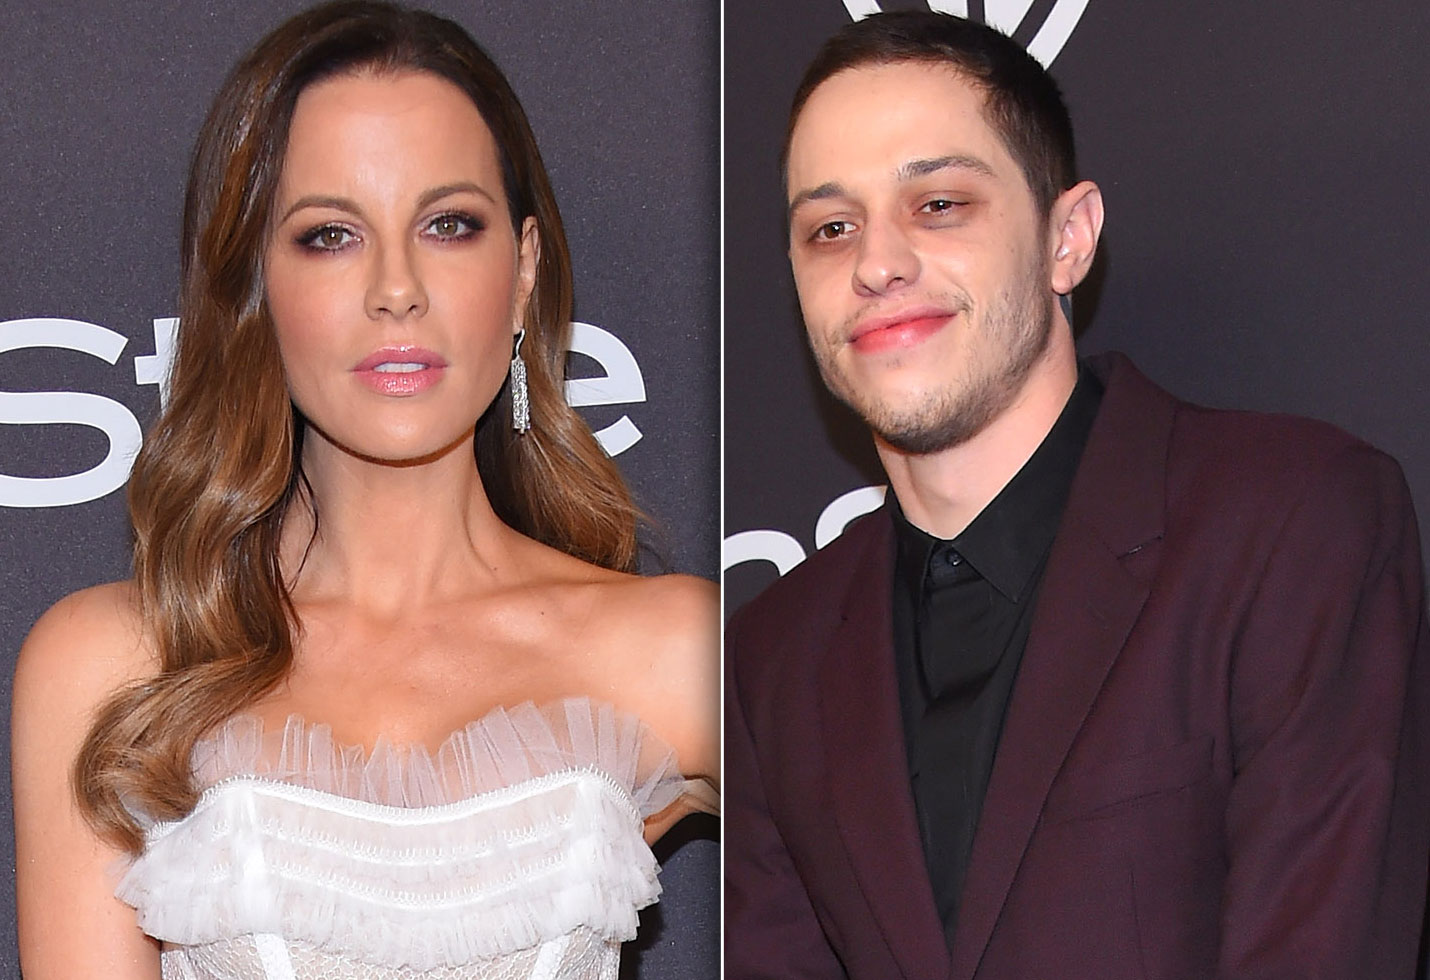 Kate Beckinsale Reacts To Meme Dragging Her Romance With